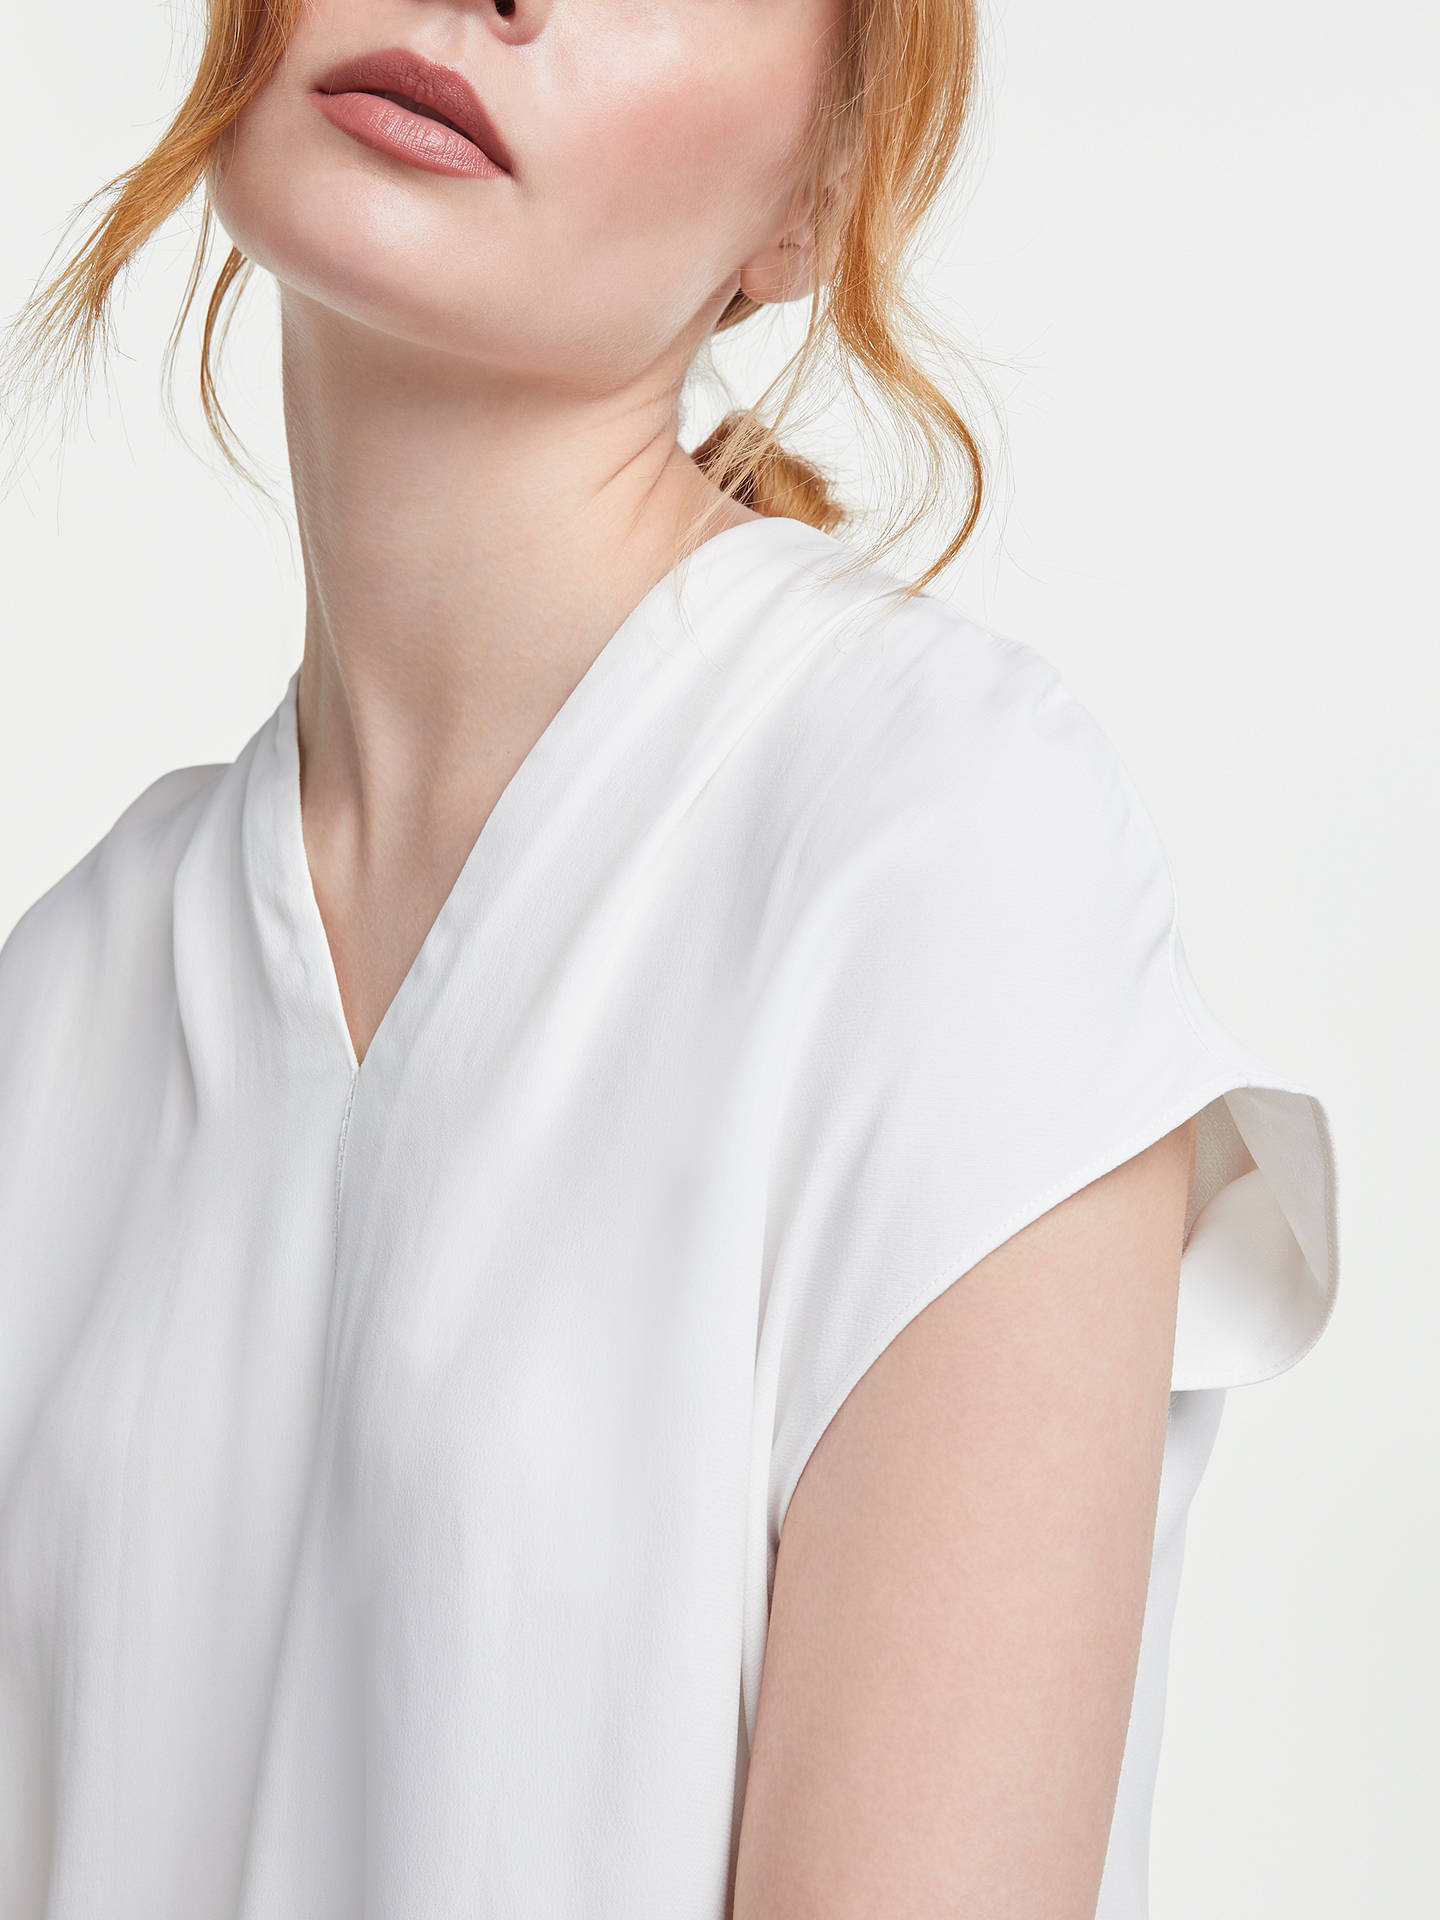 BuyJohn Lewis & Partners Pleat V Neck Blouse, Ivory, 8 Online at johnlewis.com